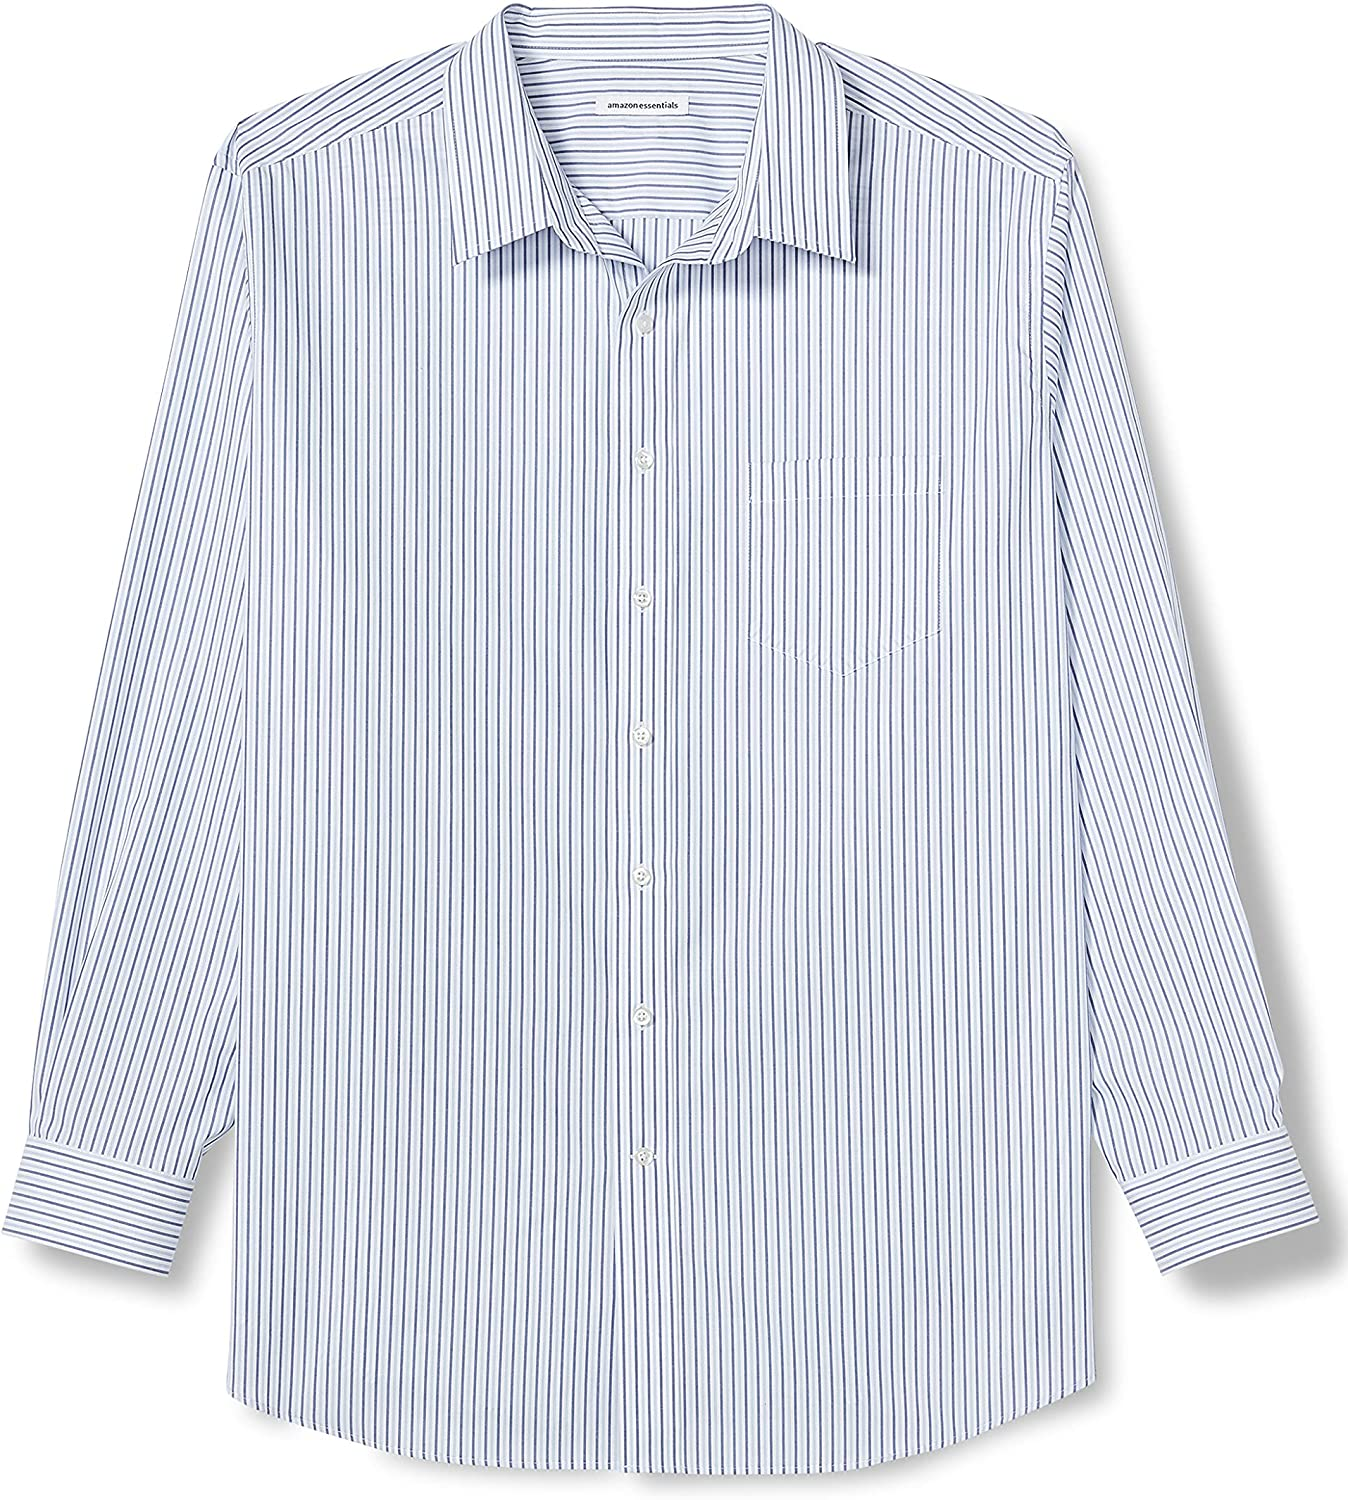 Amazon Essentials Men's Big & Tall Wrinkle-Resistant Long-Sleeve Pattern Dress Shirt fit by DXL